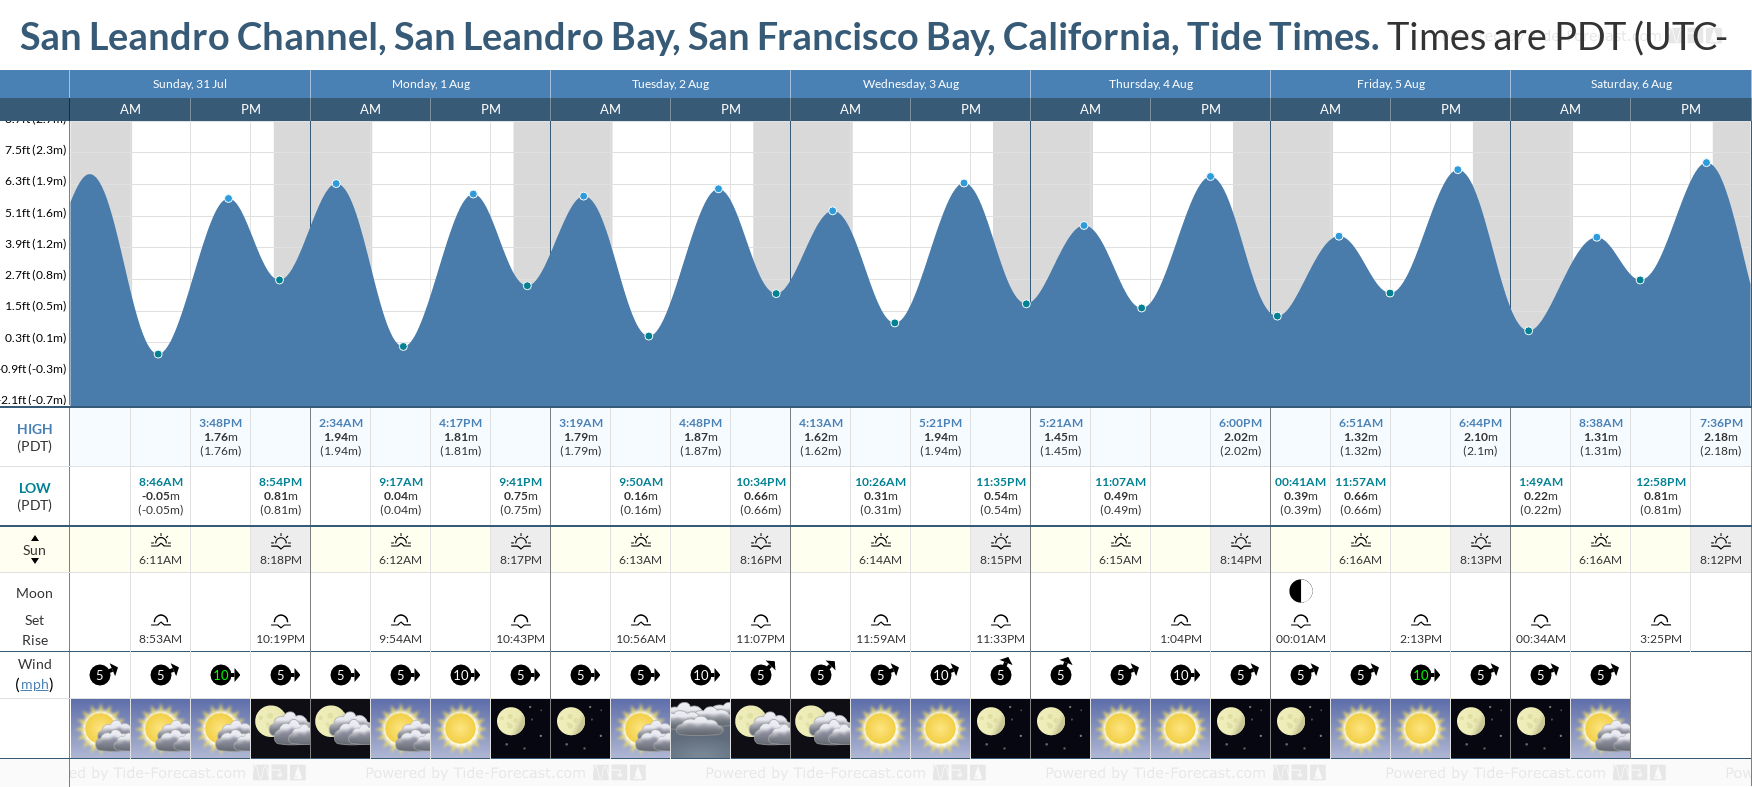 San Leandro Channel, San Leandro Bay, San Francisco Bay, California Tide Chart including high and low tide tide times for the next 7 days